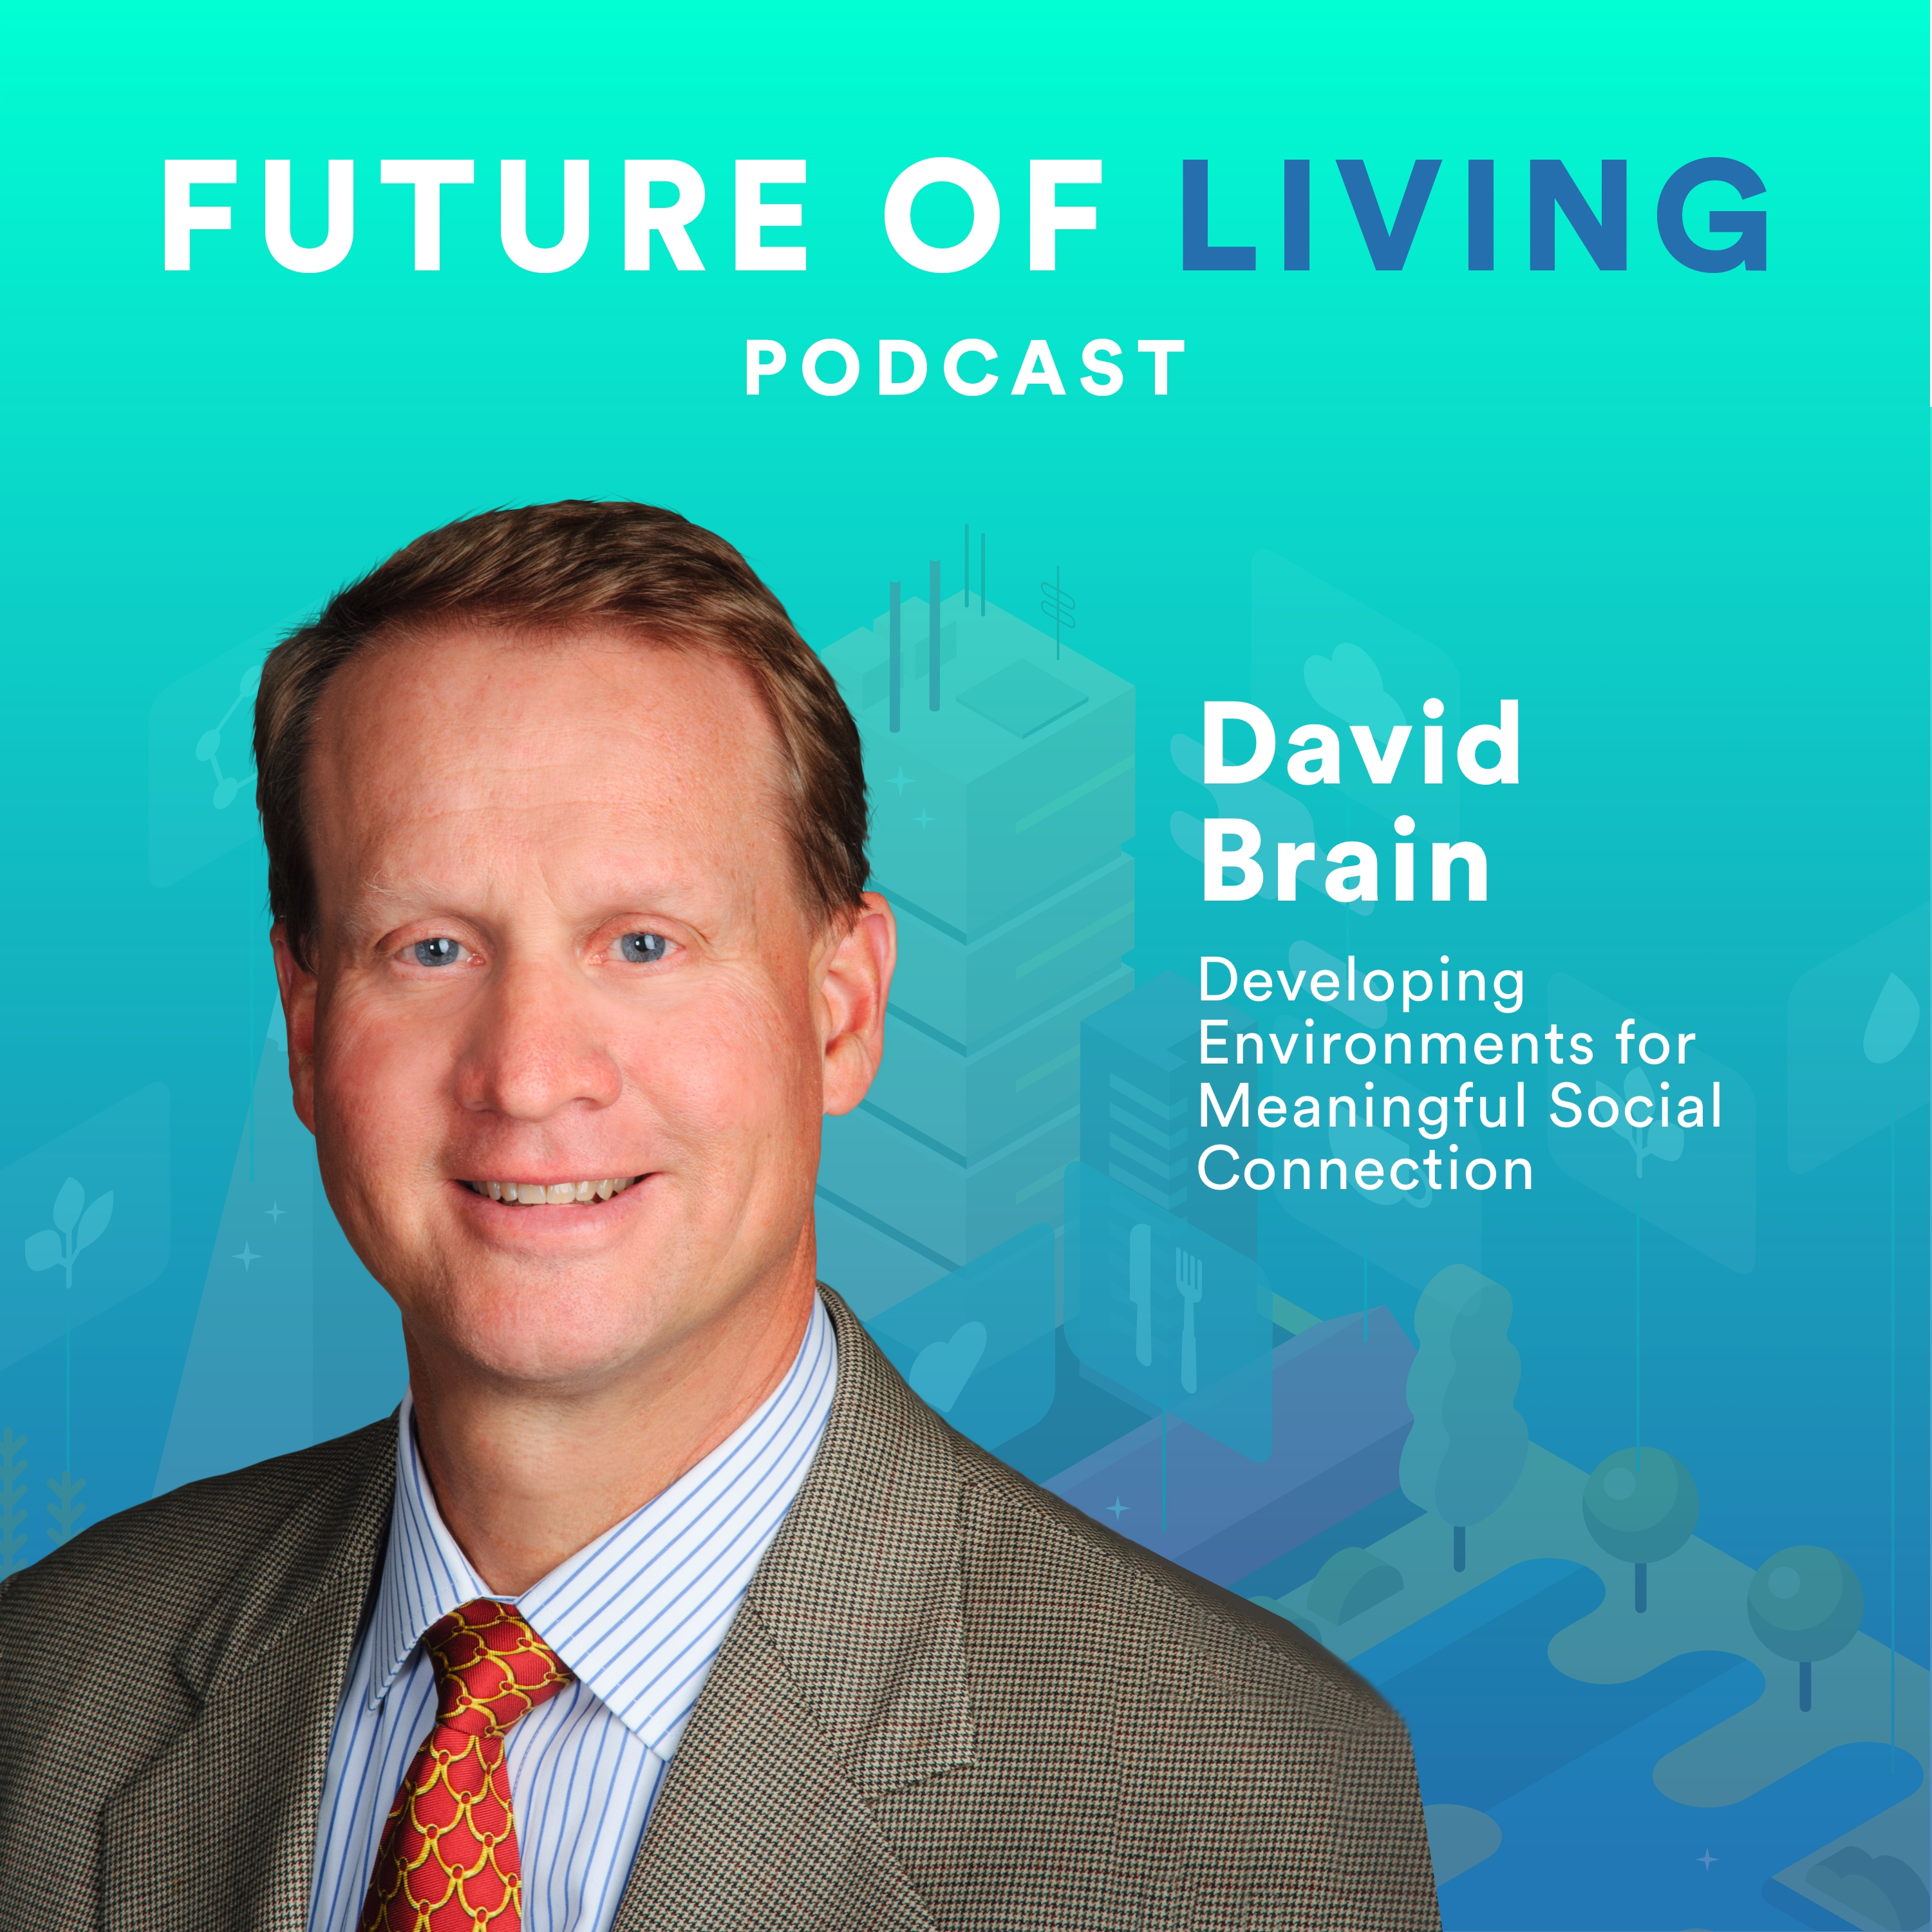 David Brain – Developing Environments for Meaningful Social Connection